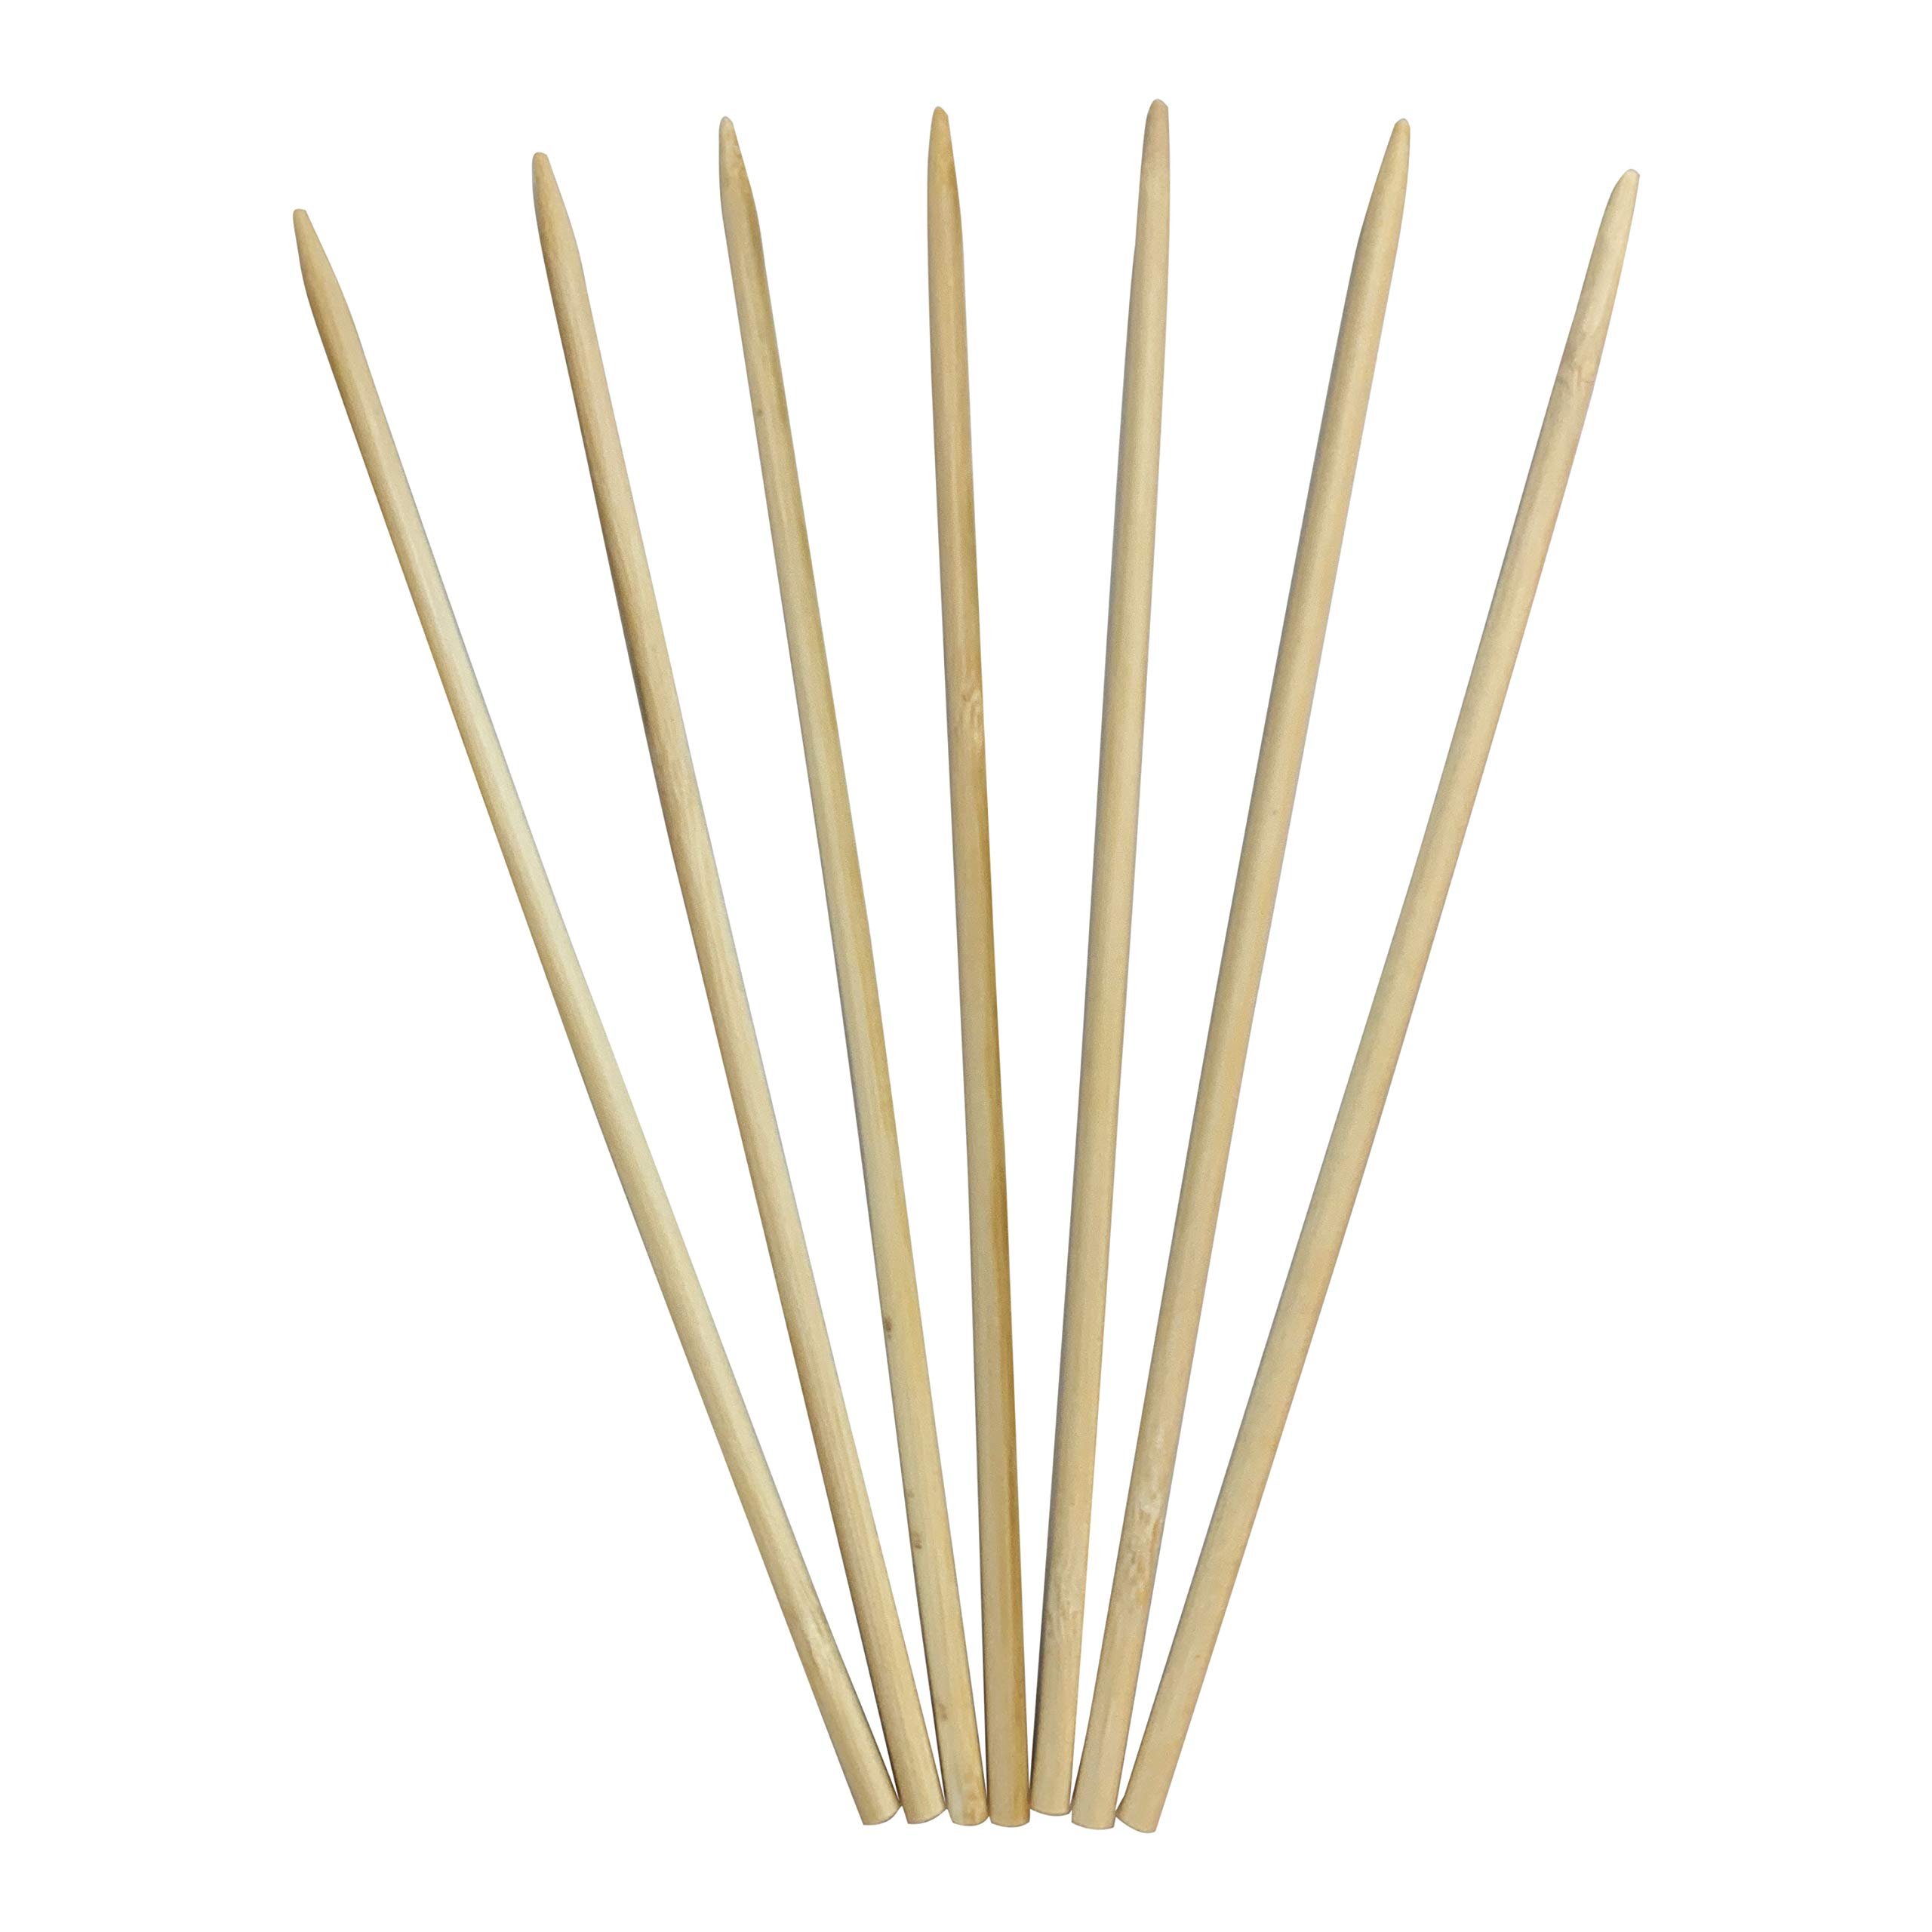 KingSeal Renewable Bamboo Wood Corn Dog Skewers, Sticks, 8.75 Inches, 5 mm Diameter - 8 Boxes of 1000 Pieces per Box by KingSeal